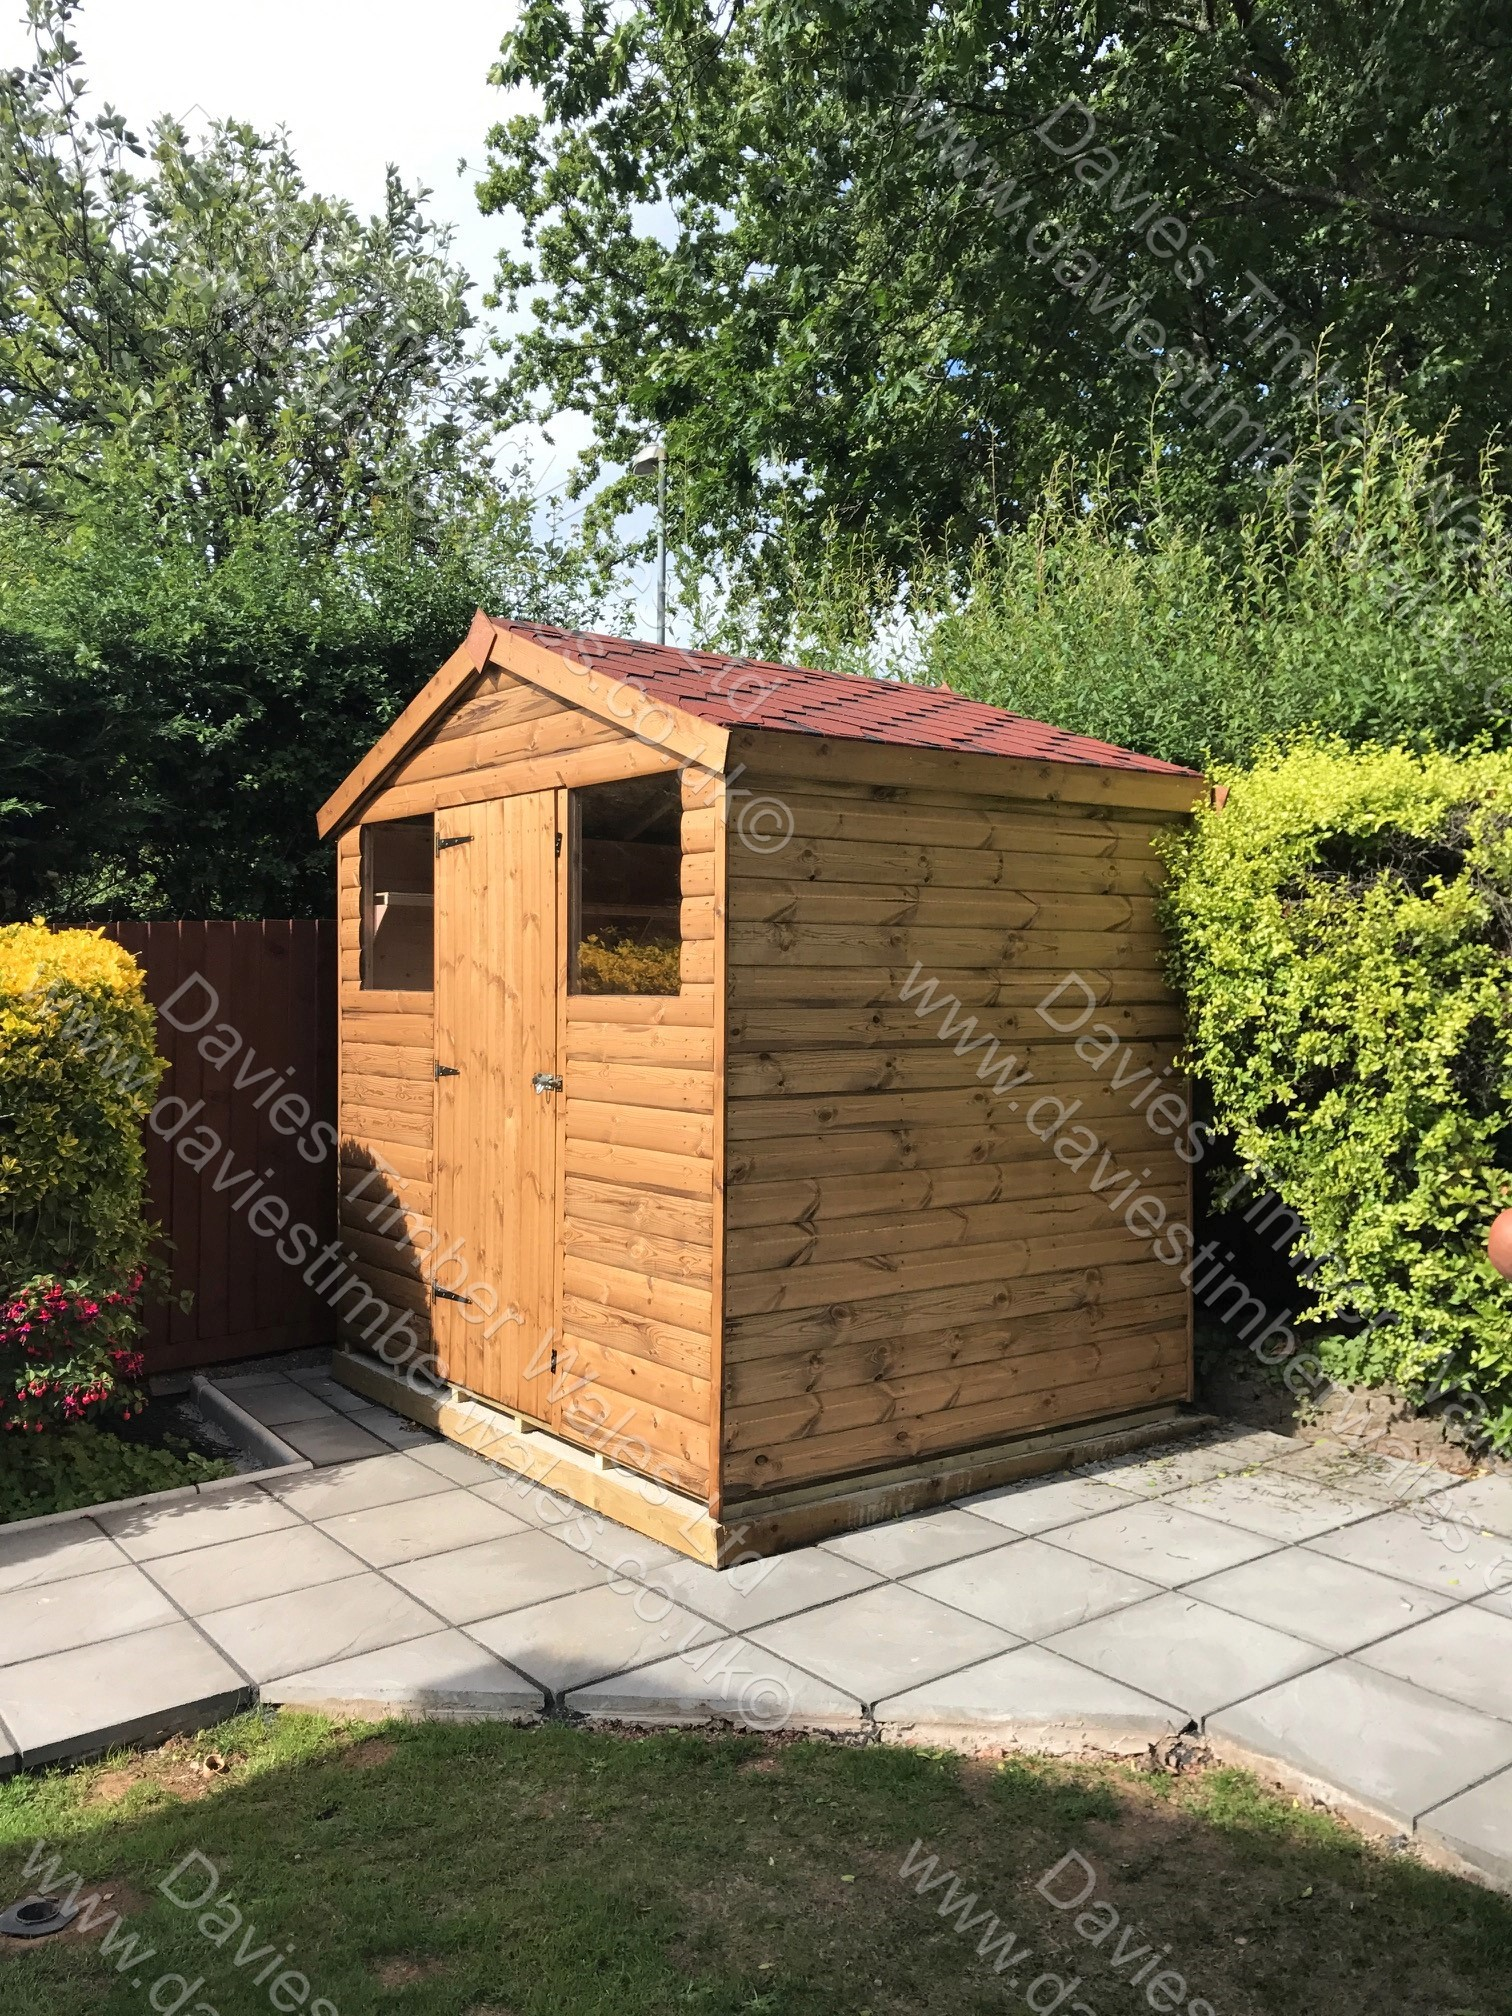 7 x 5 Apex Shed